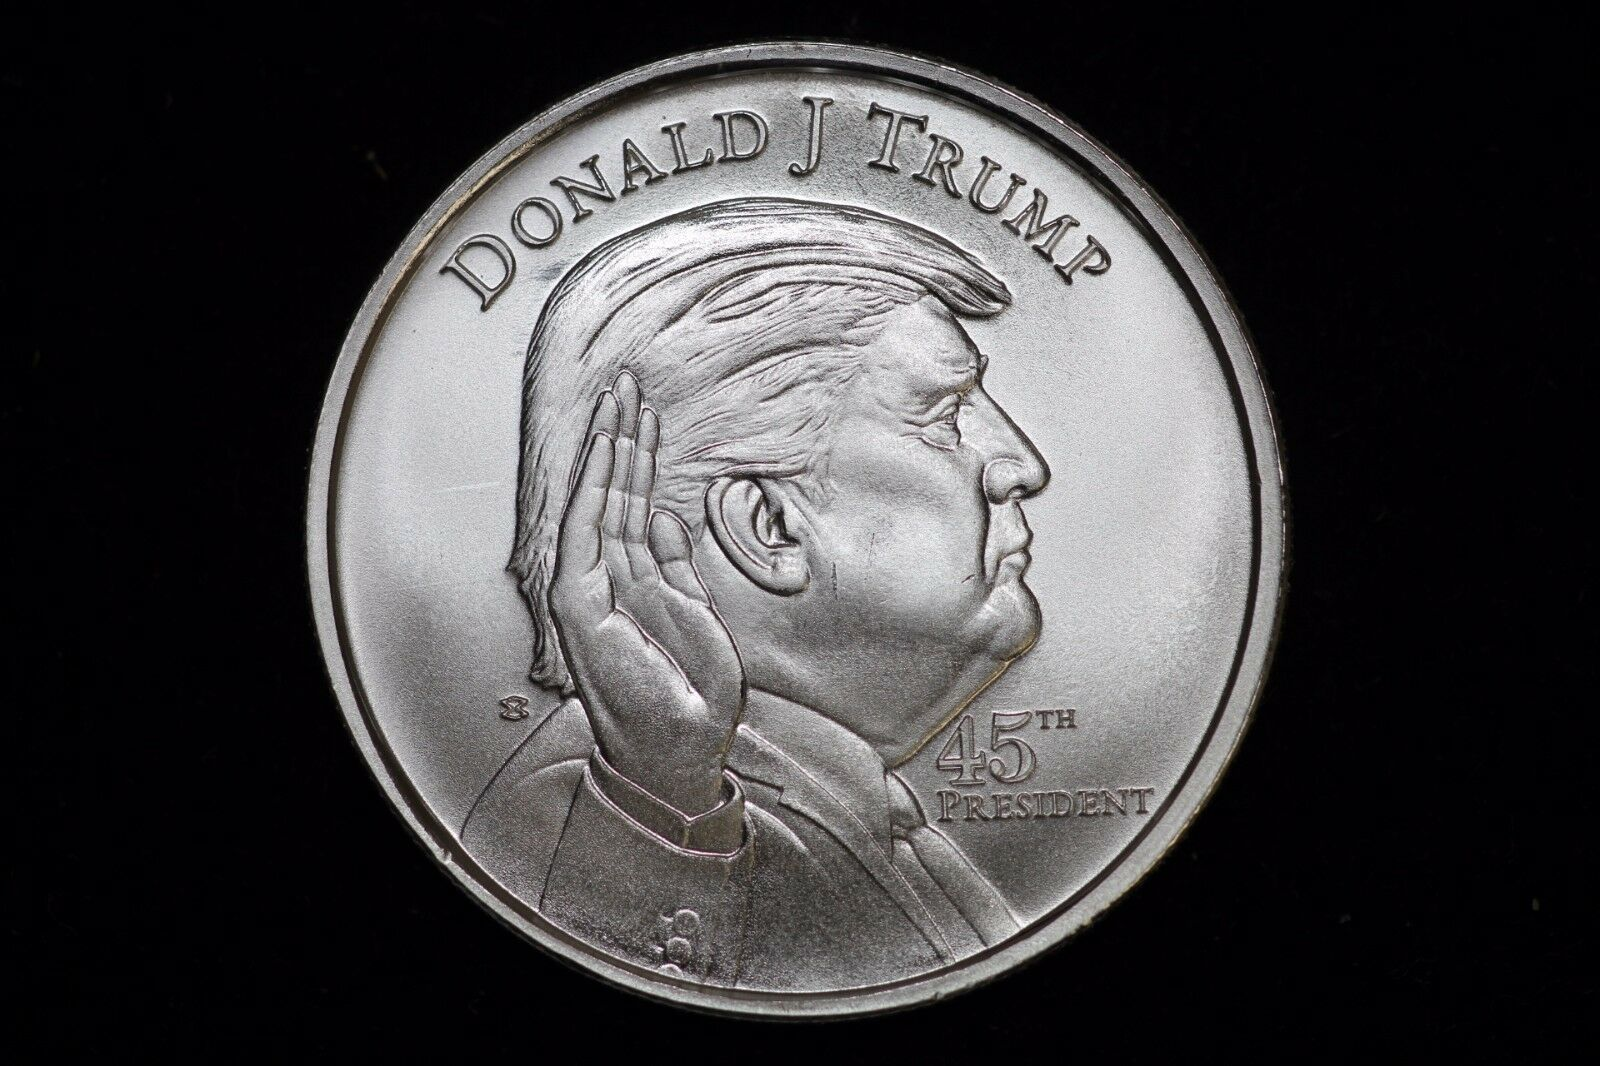 2017 Donald Trump 1oz Silver Round 999 Fine Bullion Coin